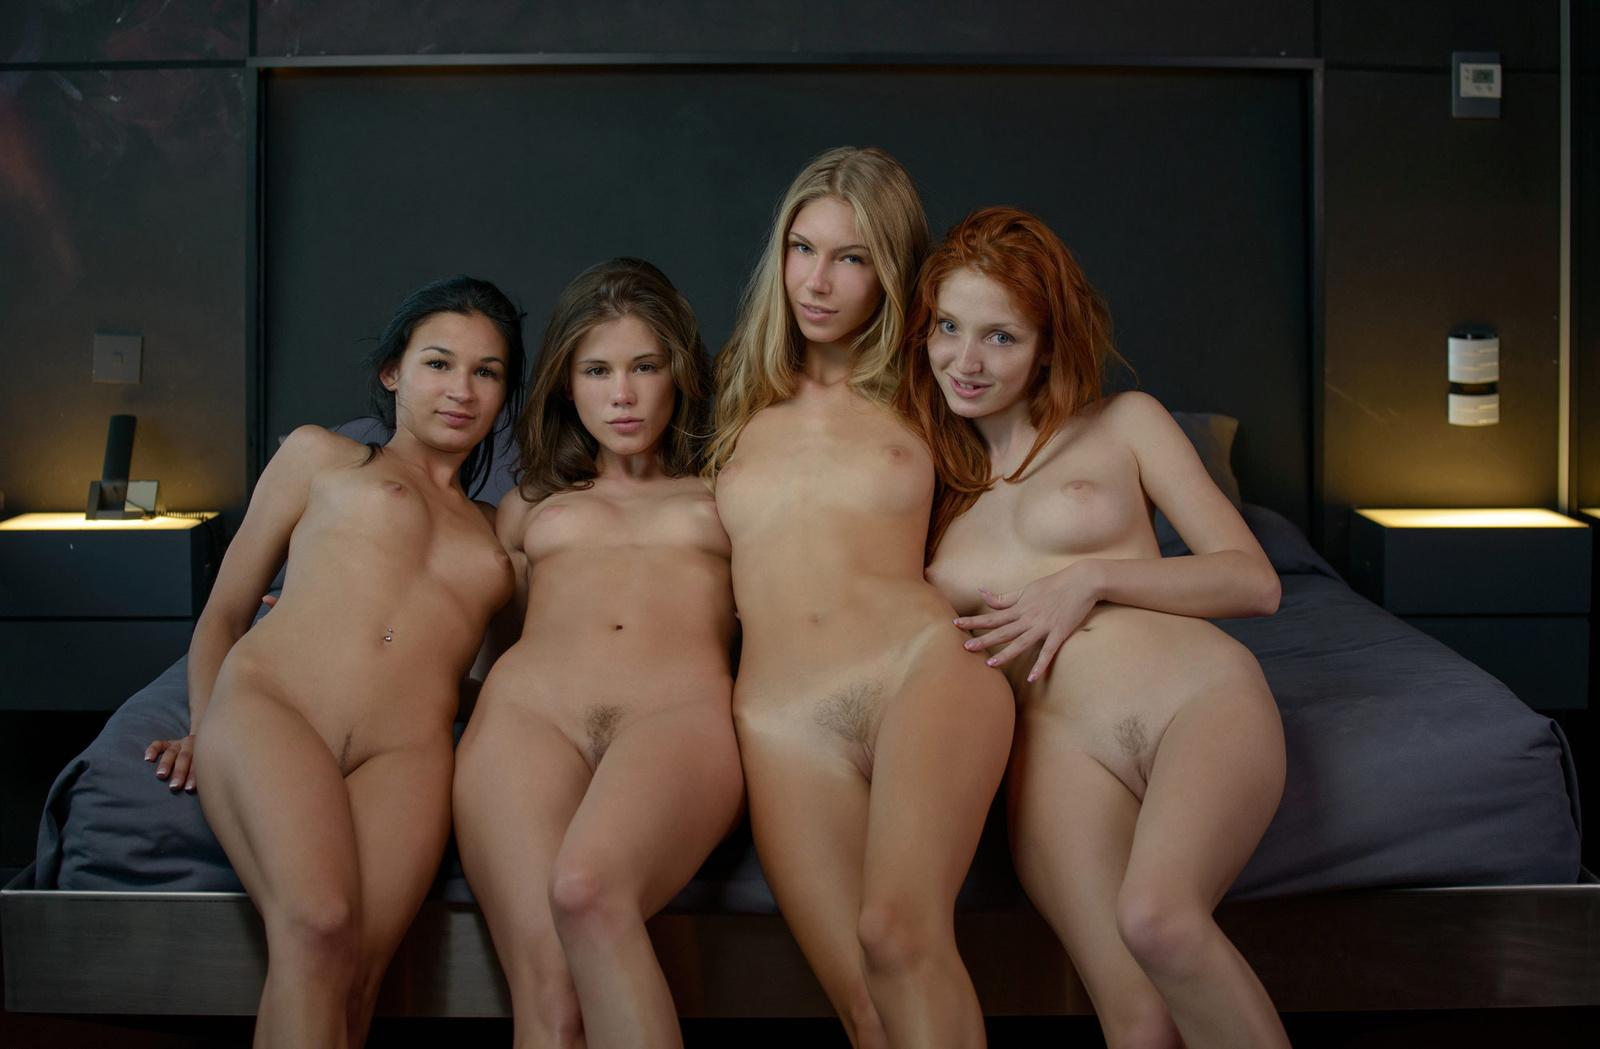 sexy-friend-nude